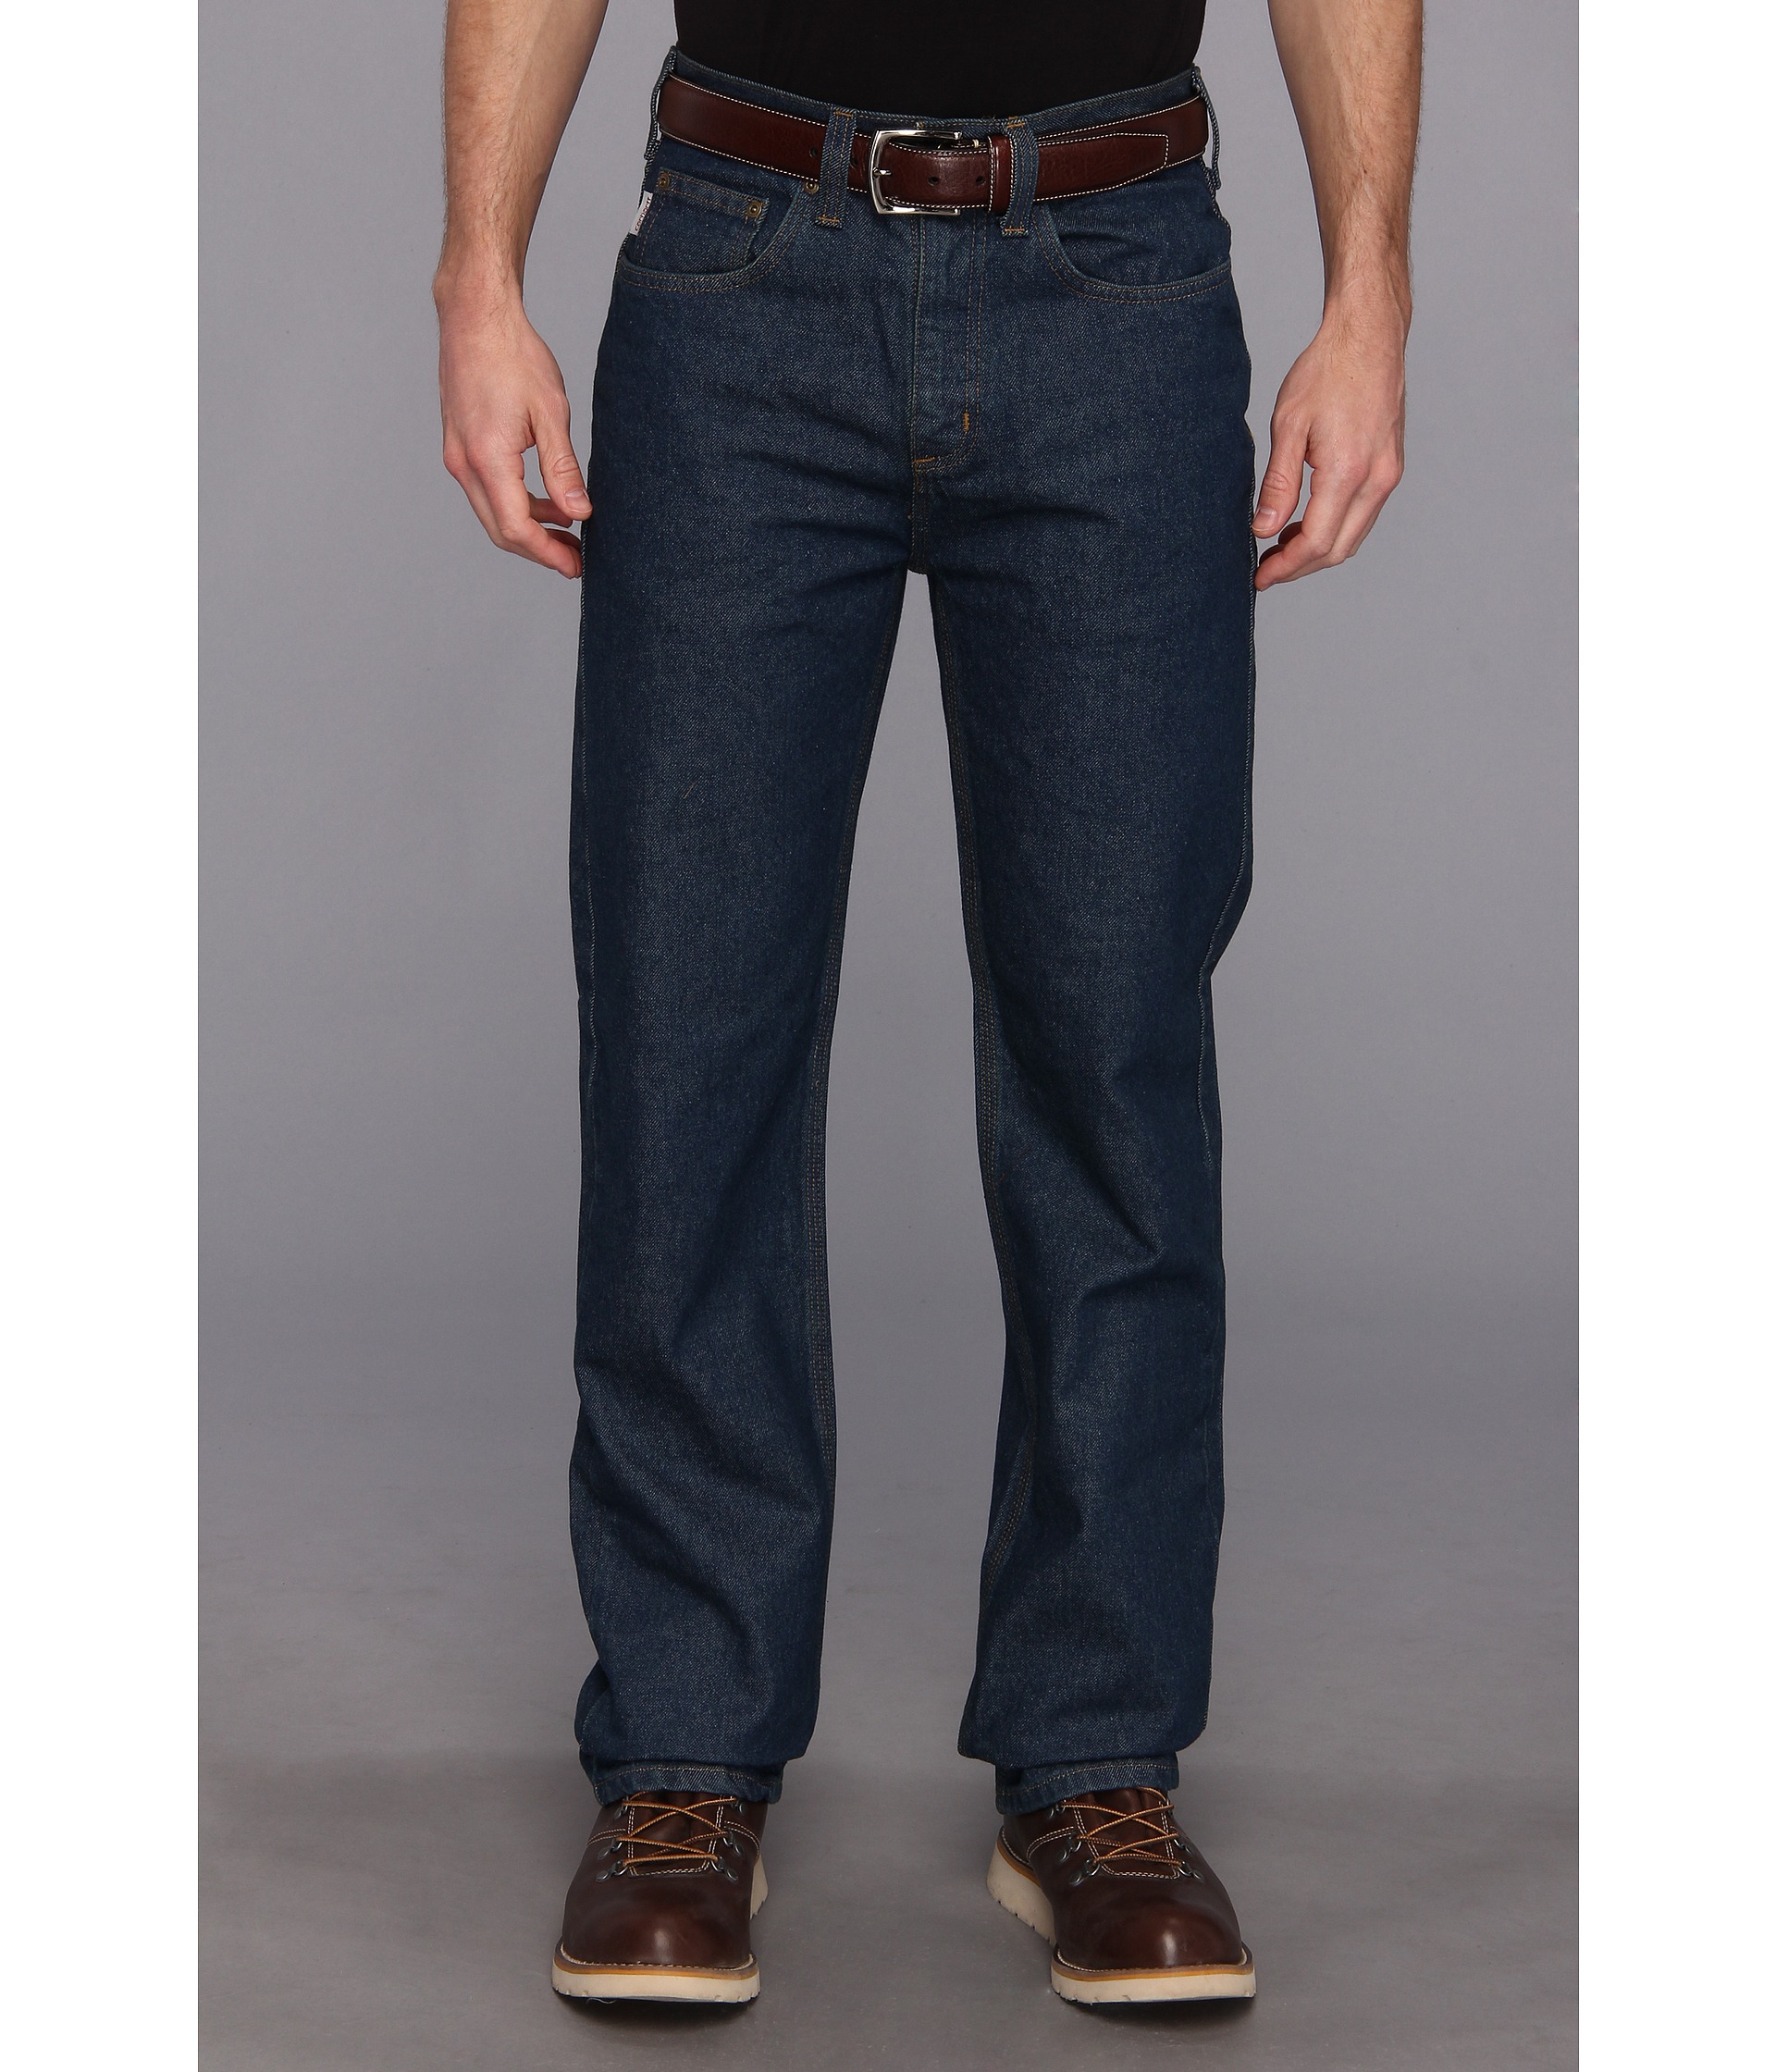 relaxed fit mens jeans Men at 6pm.com